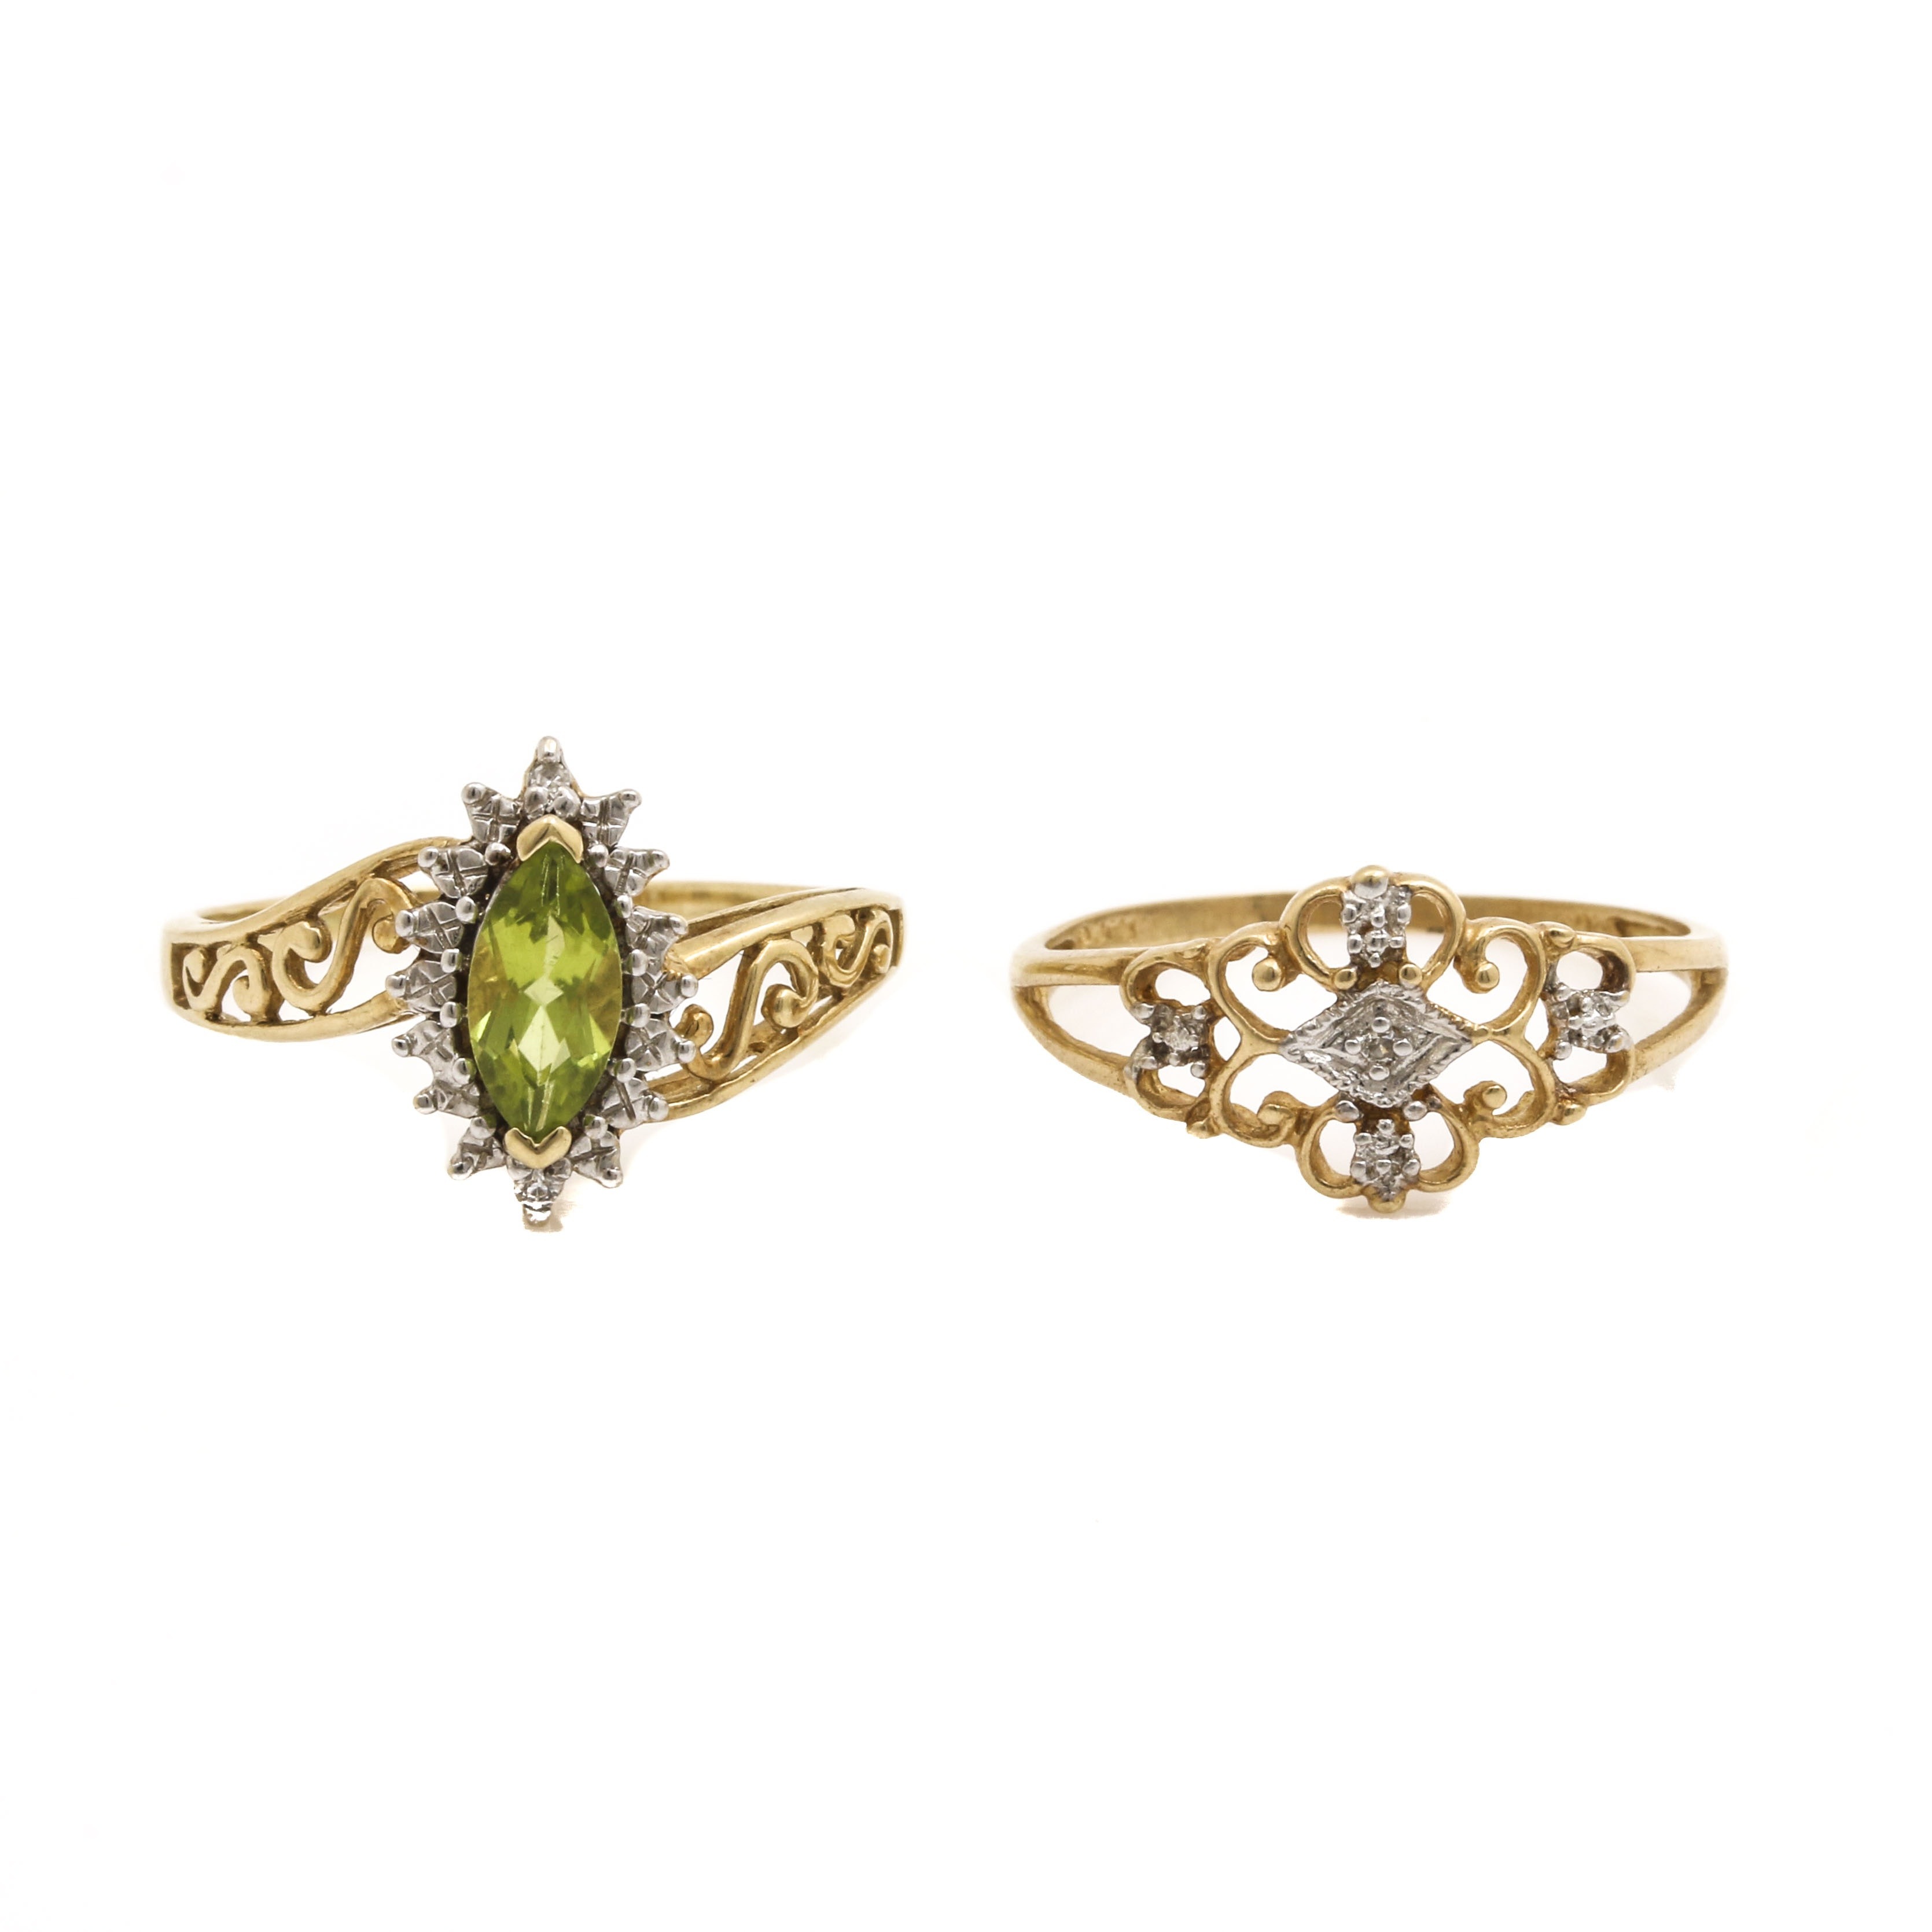 10K Yellow Gold Rings Including Diamonds and Peridot